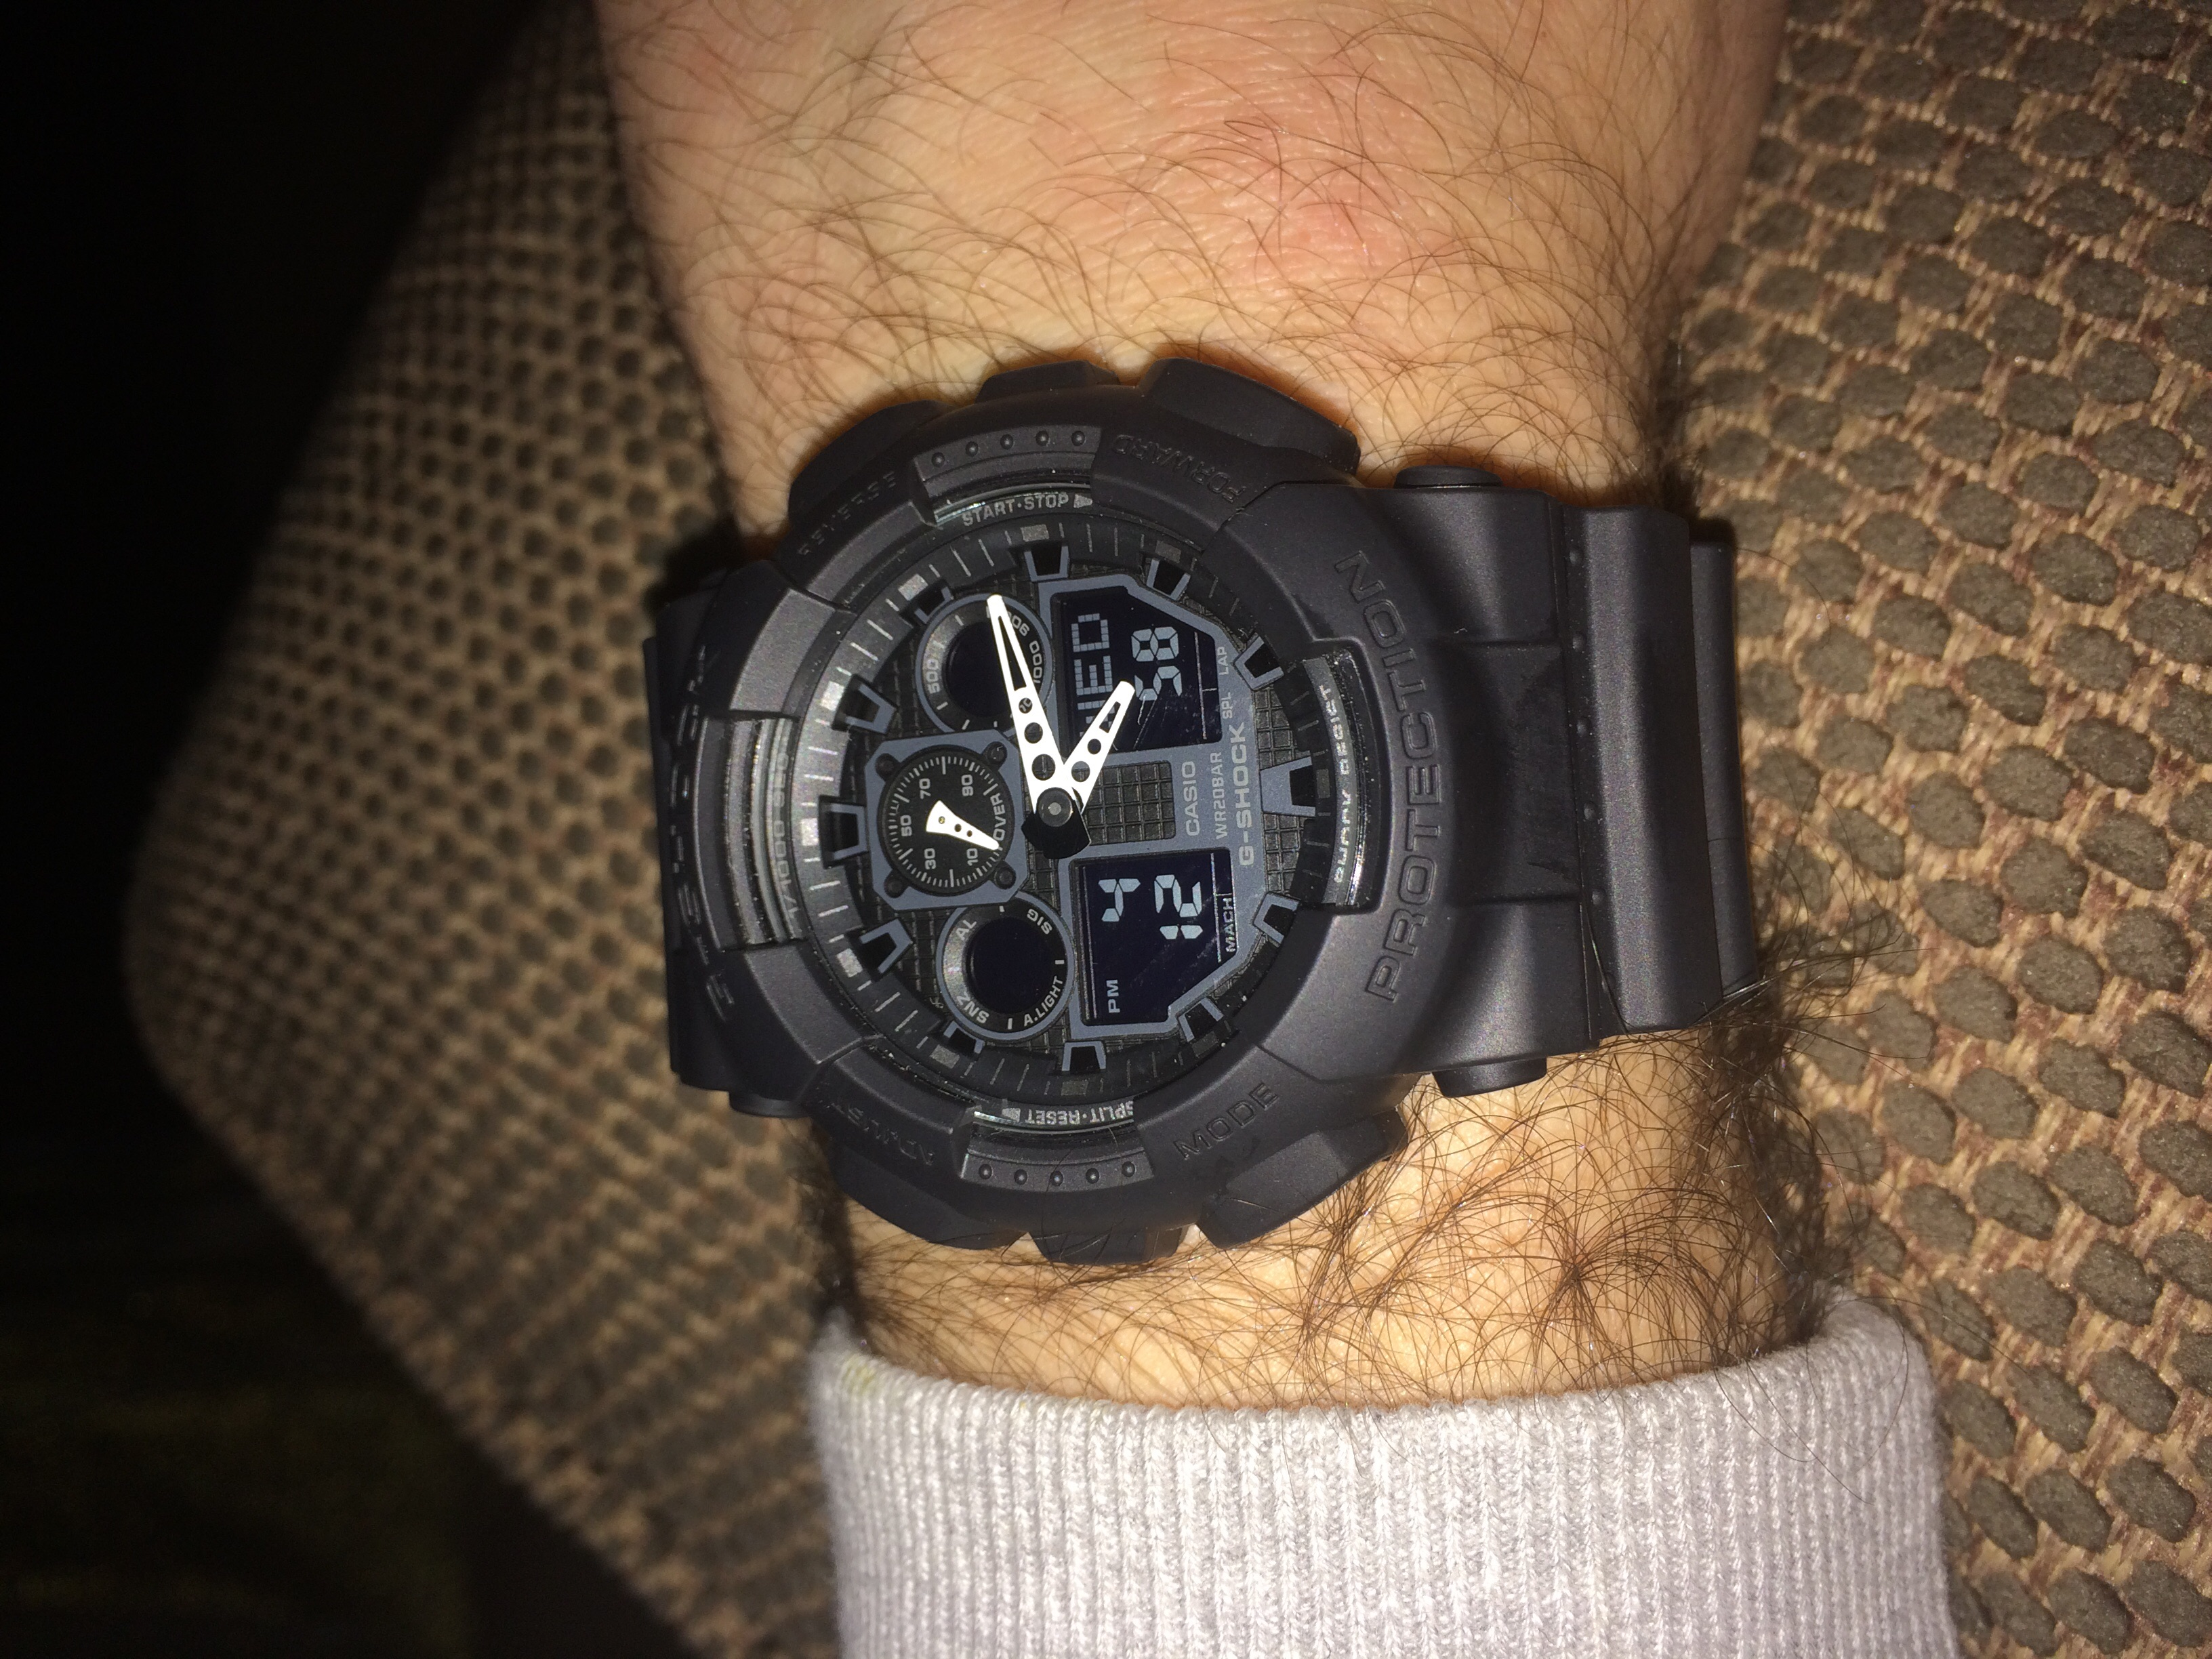 39ef64384bc Bought this watch for my bf for Christmas and he absolutely loved it